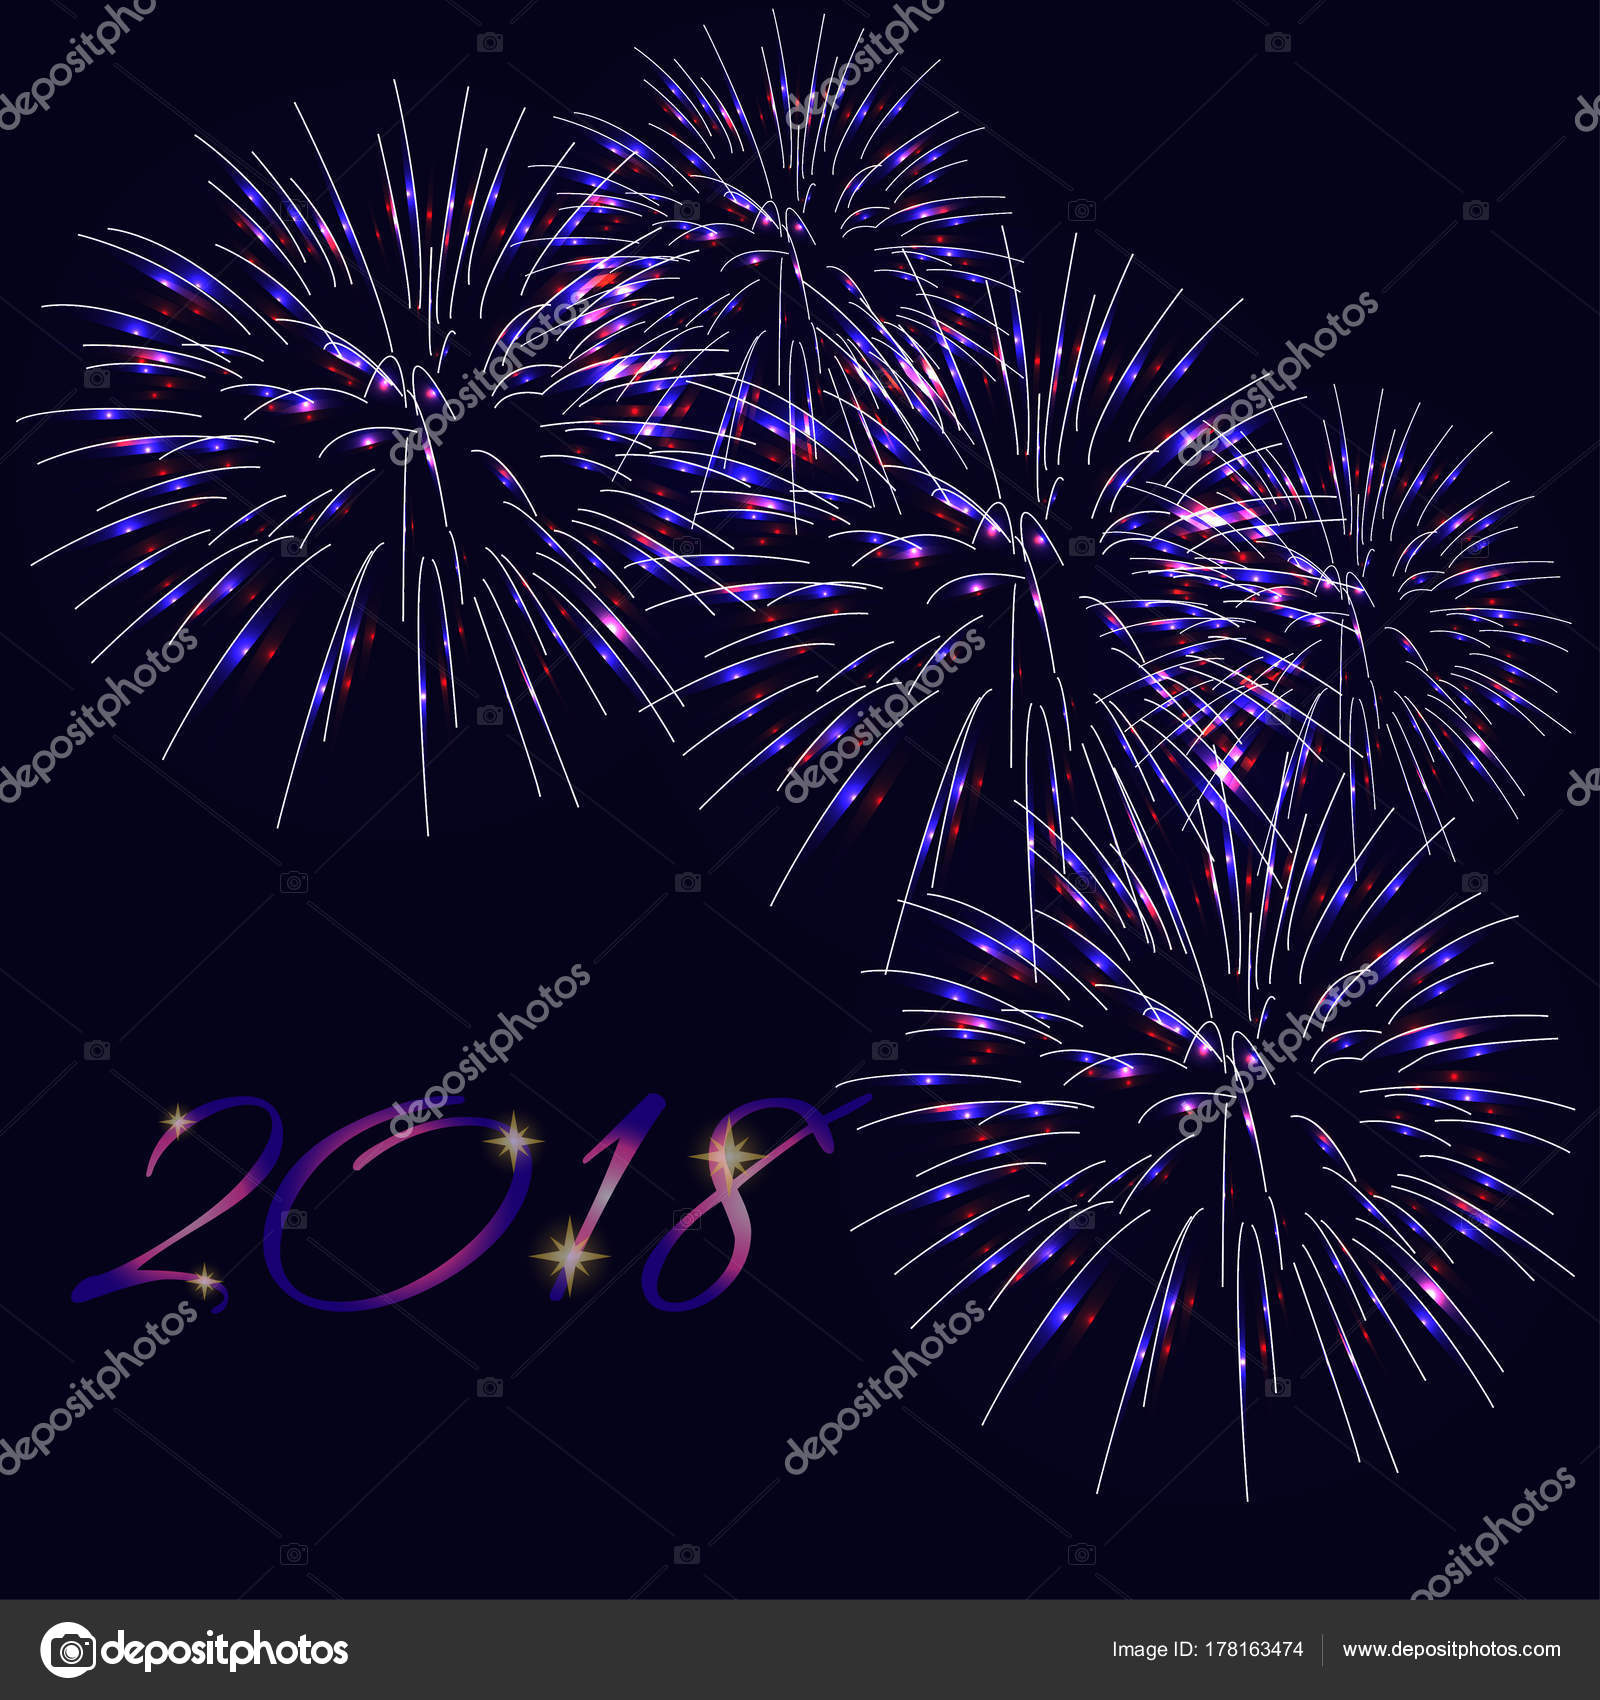 happy new year 2018 greeting card template with text and bright fireworks on dark blue background